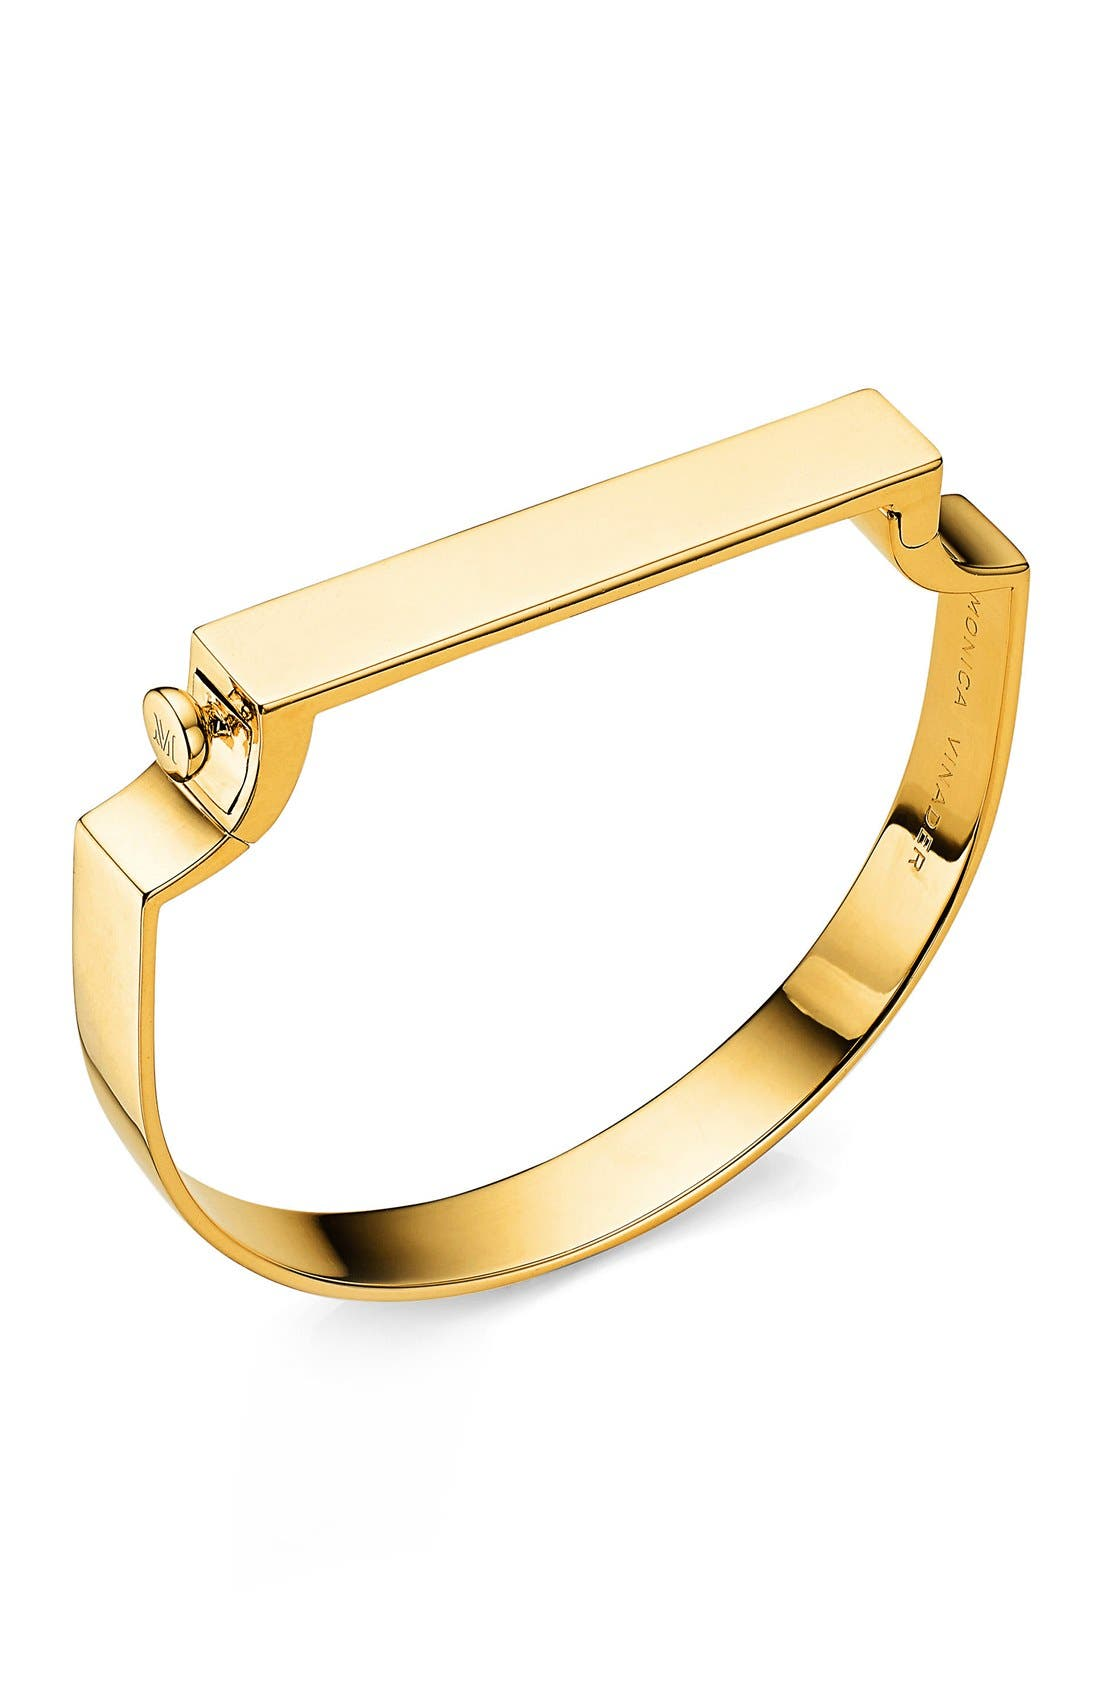 Main Image - Monica Vinader Signature Bangle